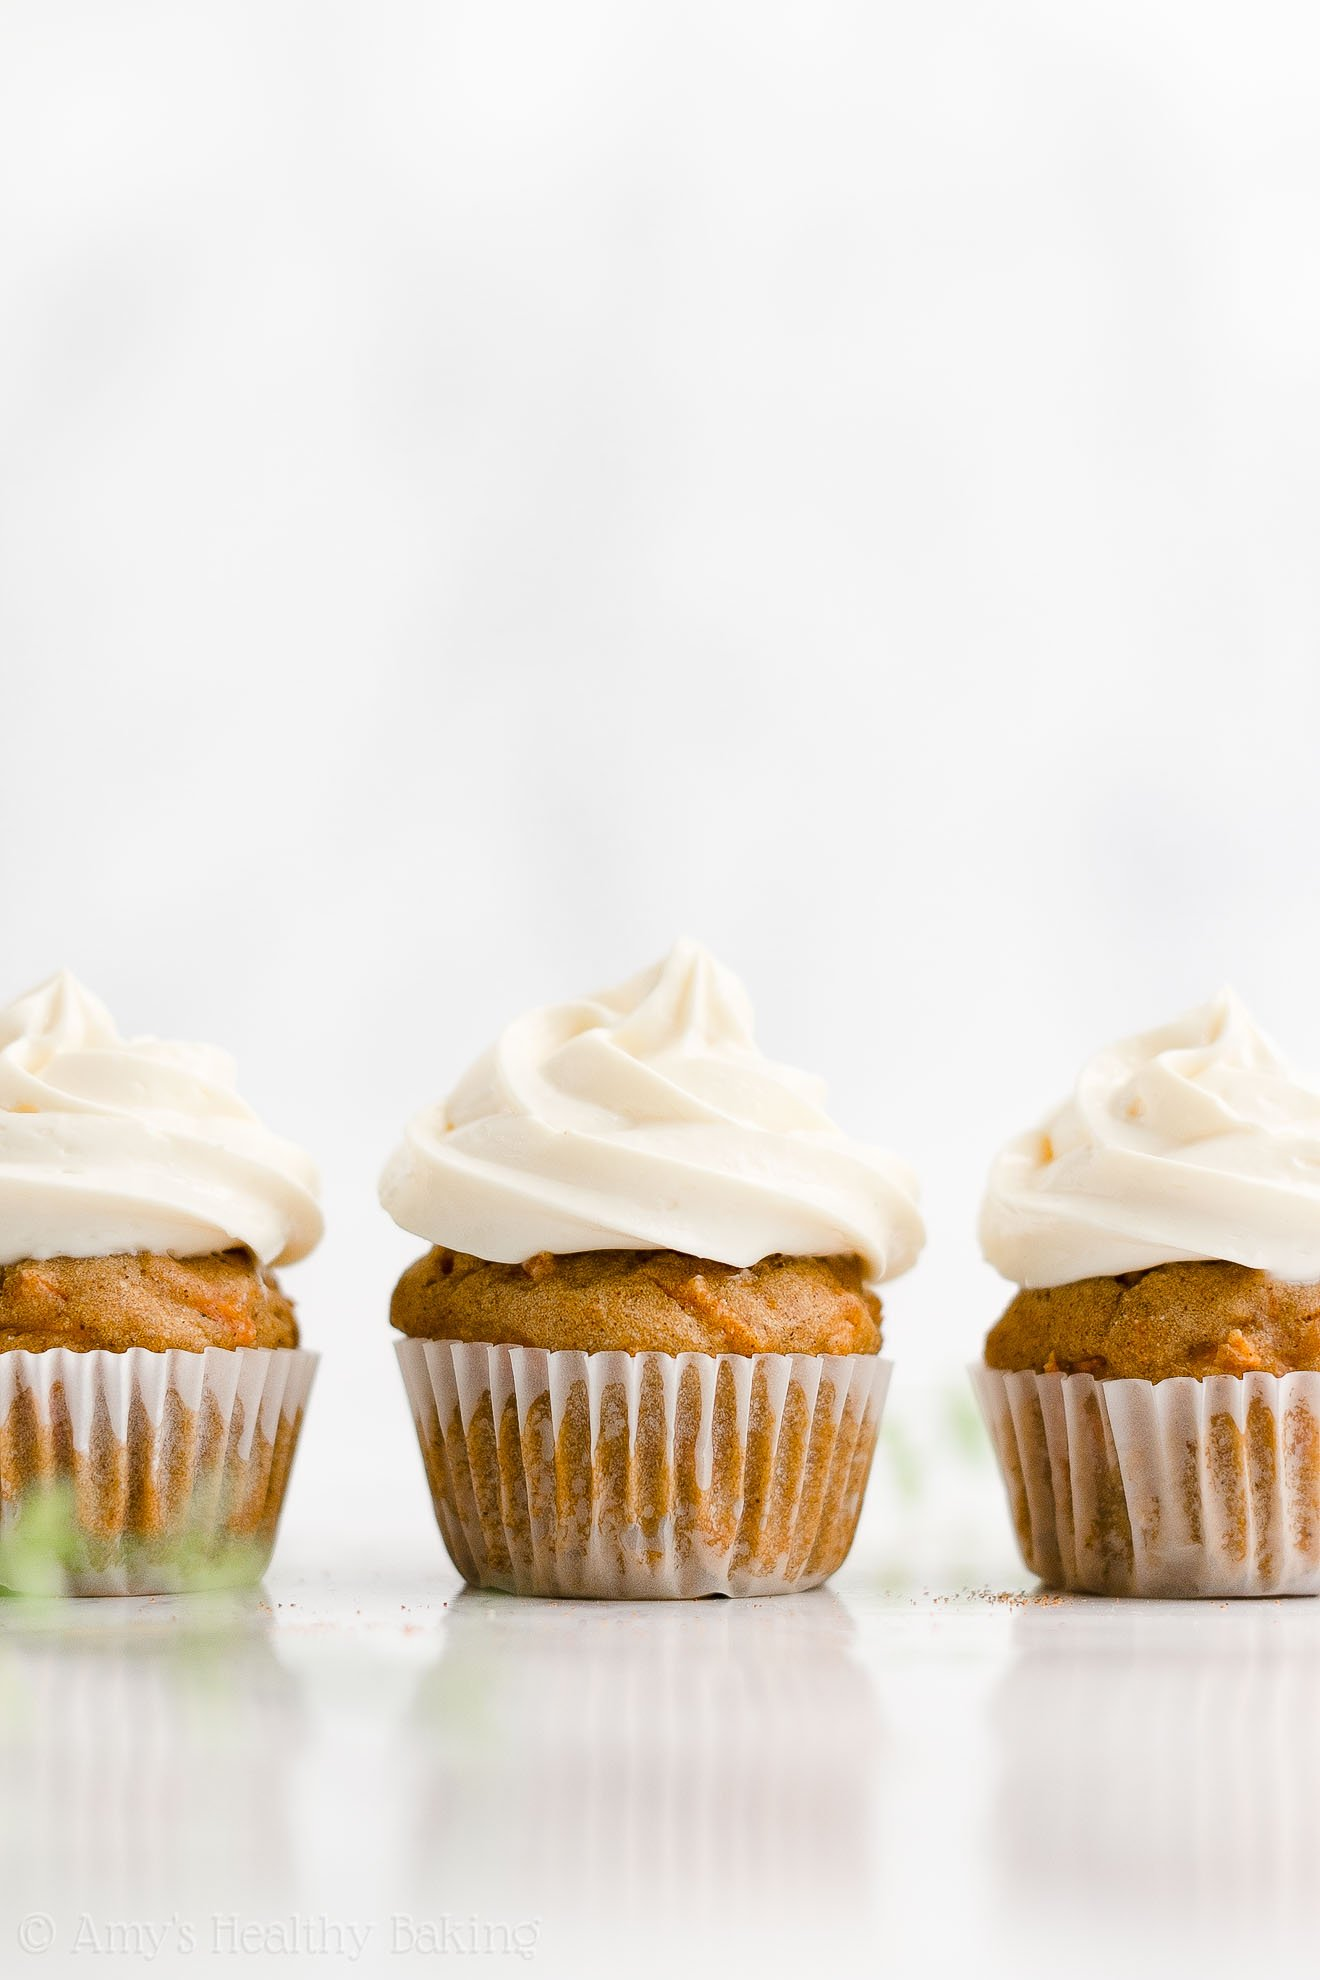 ULTIMATE Easy Healthy Whole Wheat Low Fat Moist Mini Carrot Cake Cupcakes